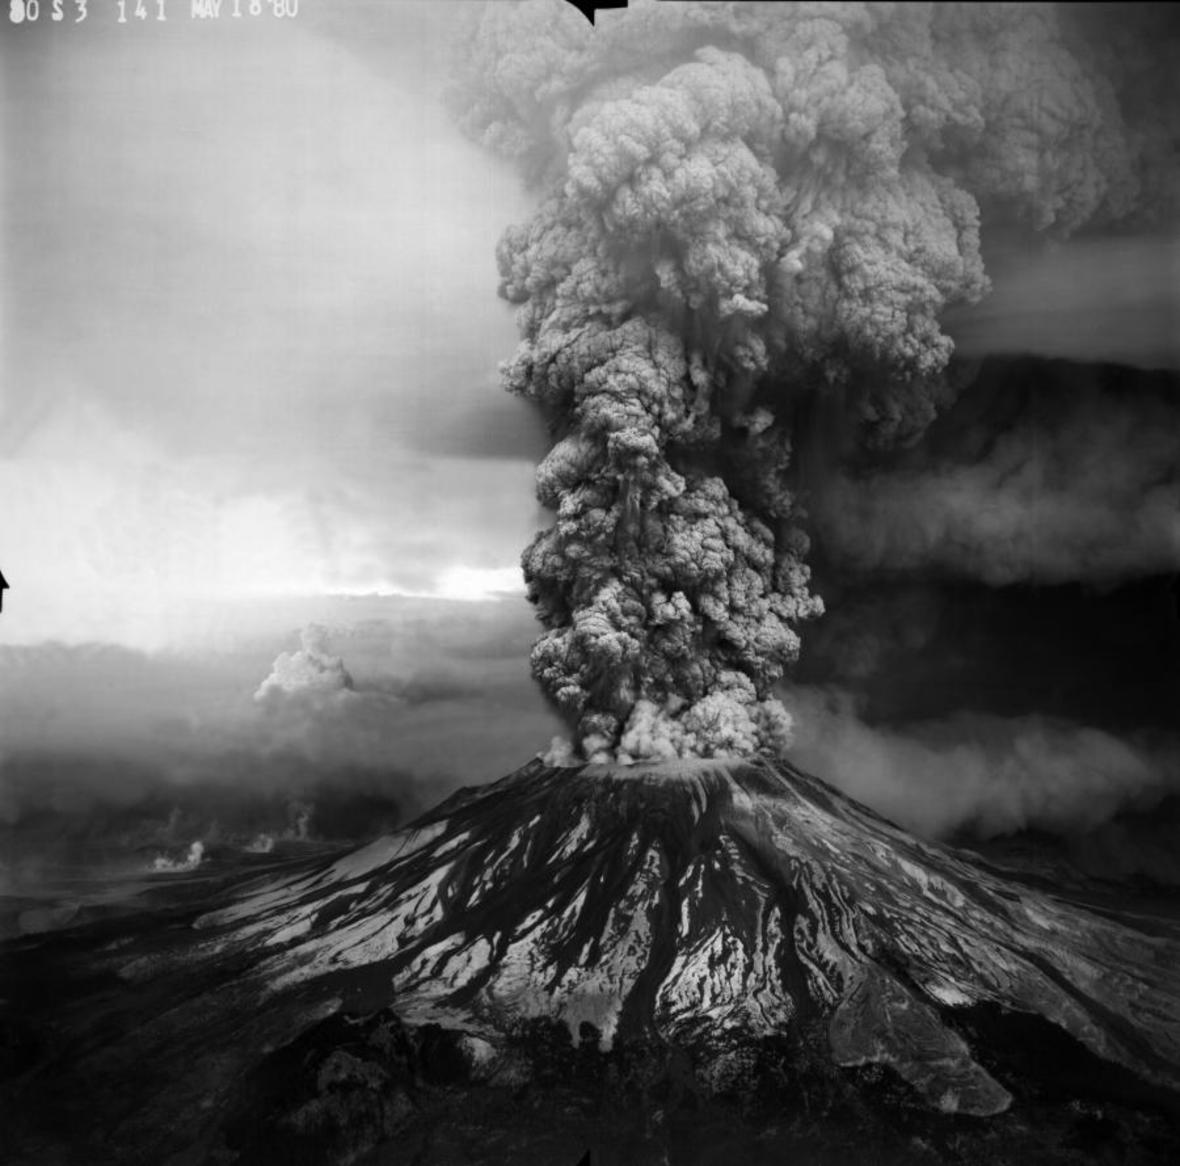 Mt. Saint Helens & the History of Volcano Hazard Management in Washington State